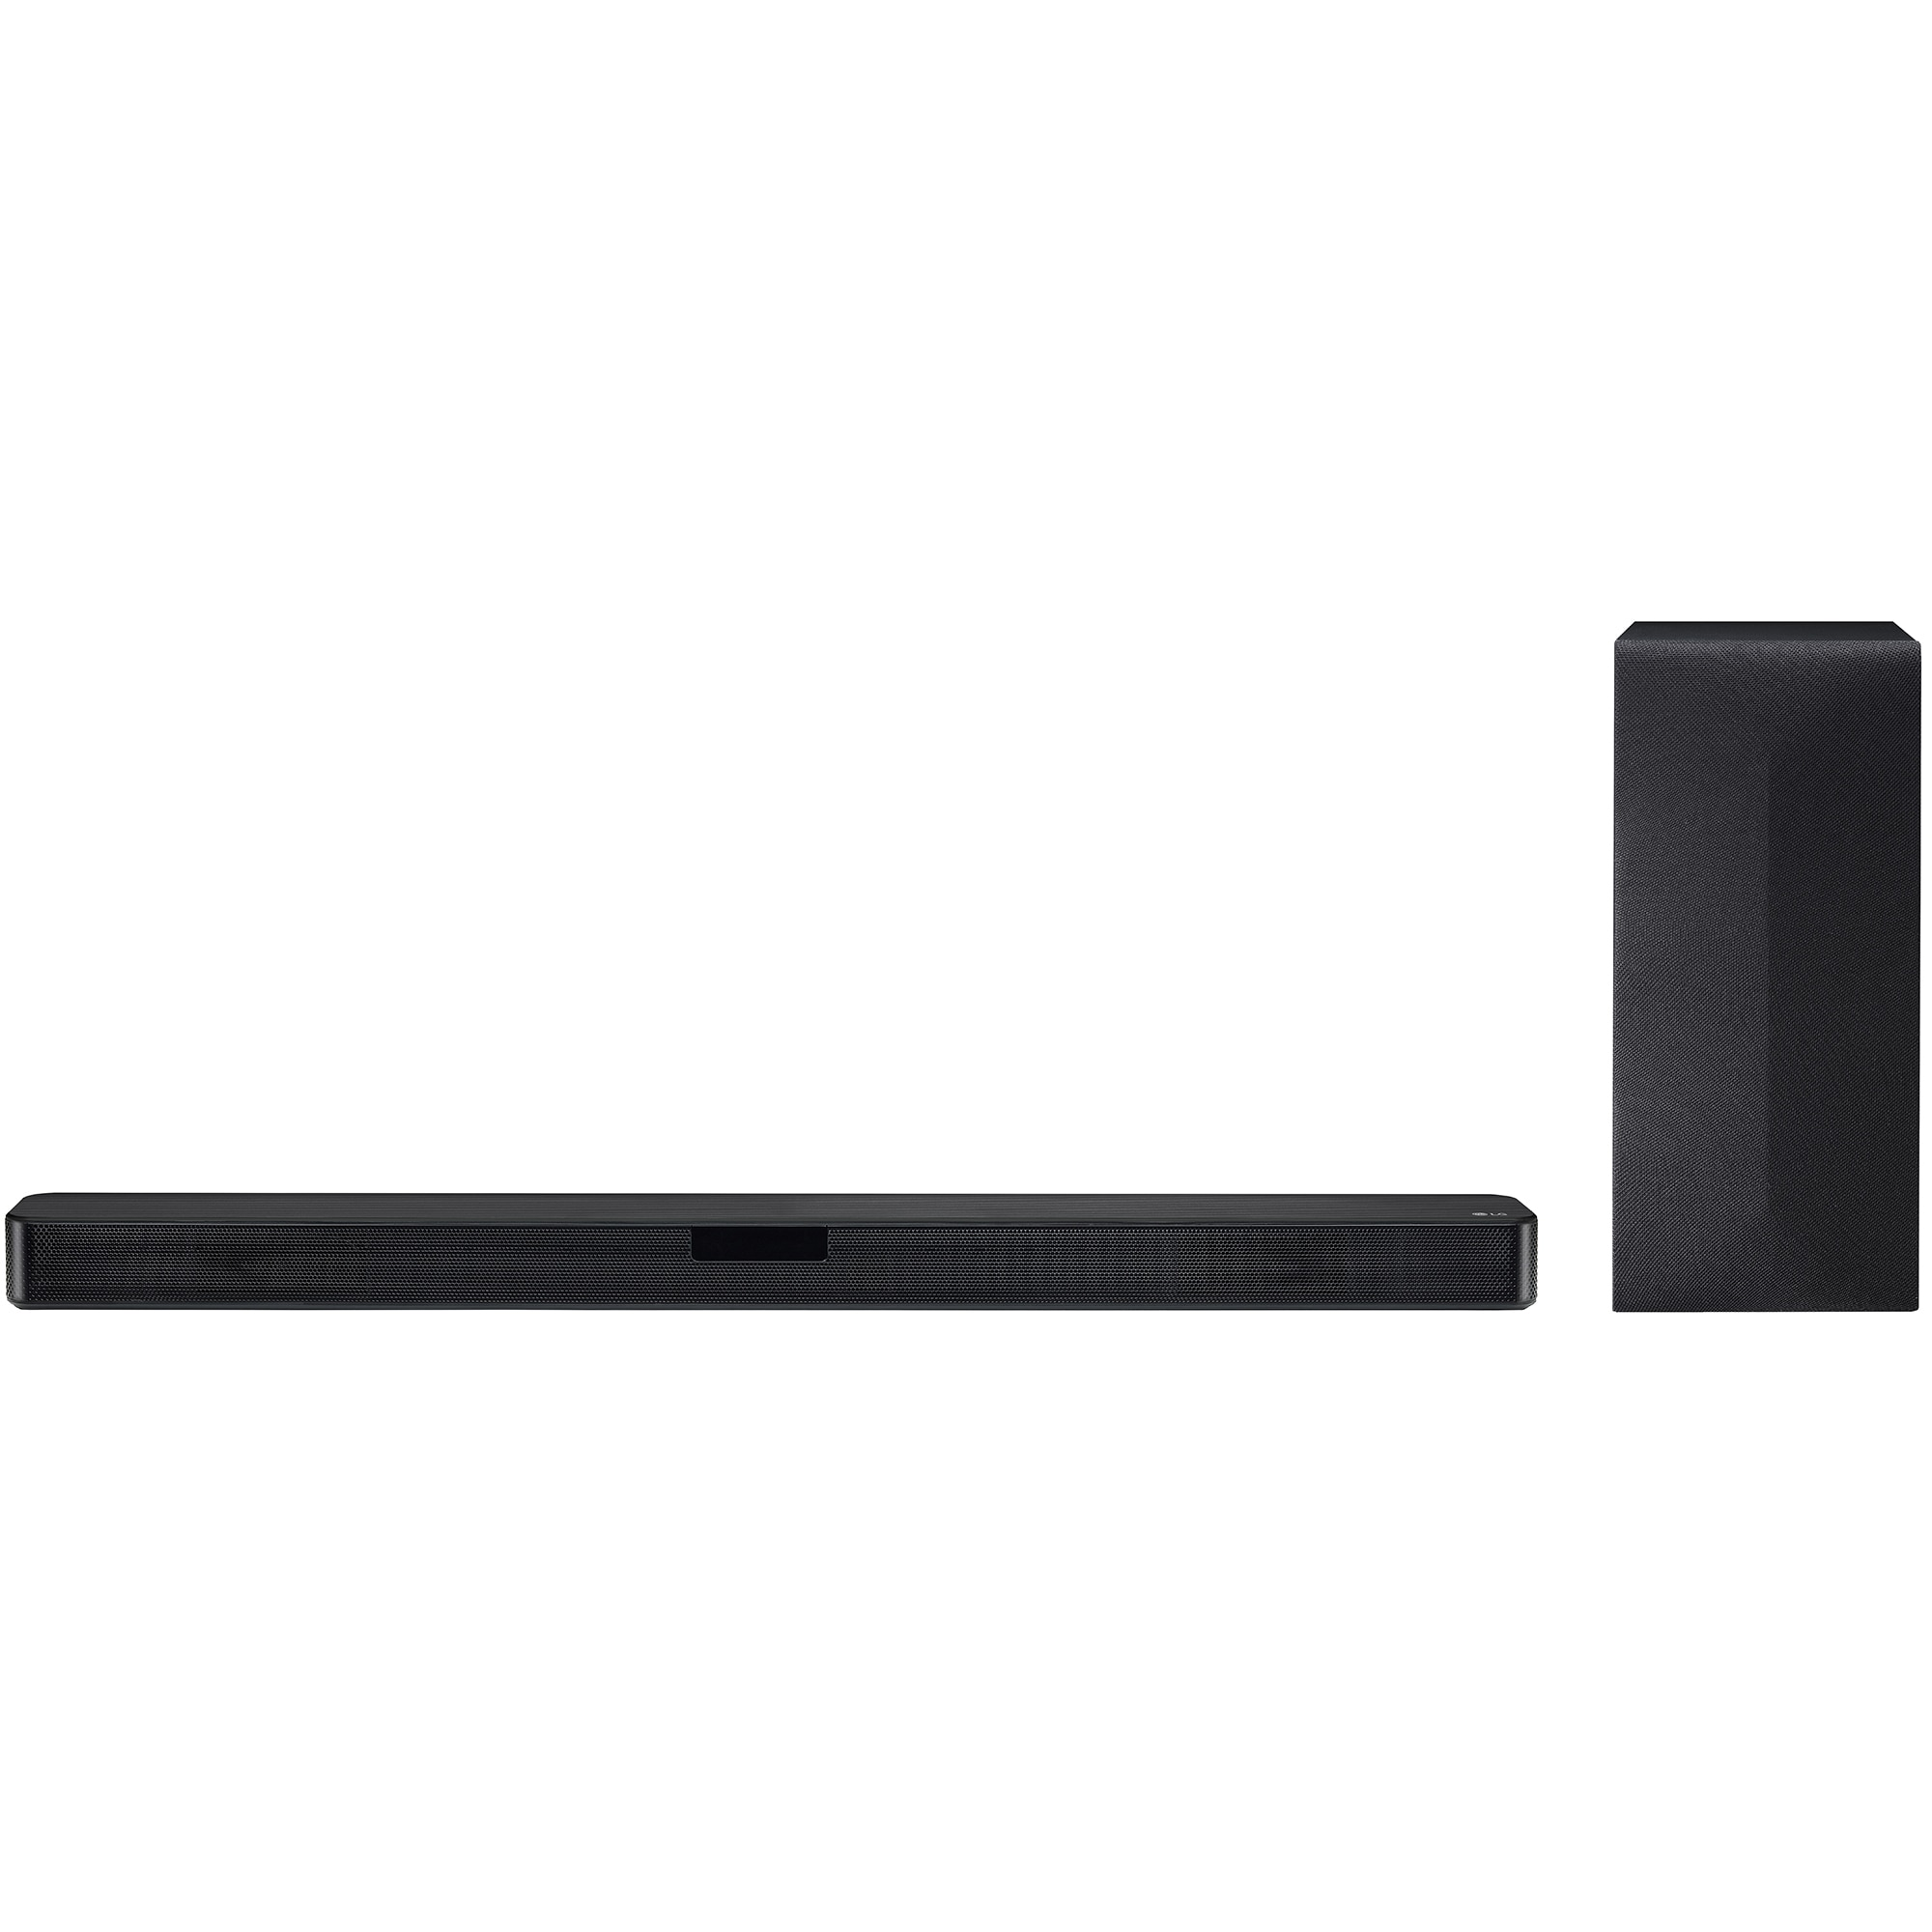 Fotografie Soundbar LG SL4Y, 300W, 2.1 ,Wirelss subwoofer , TV SoundSync, Wireless subwoofer, Wireless Rear Speaker-Ready